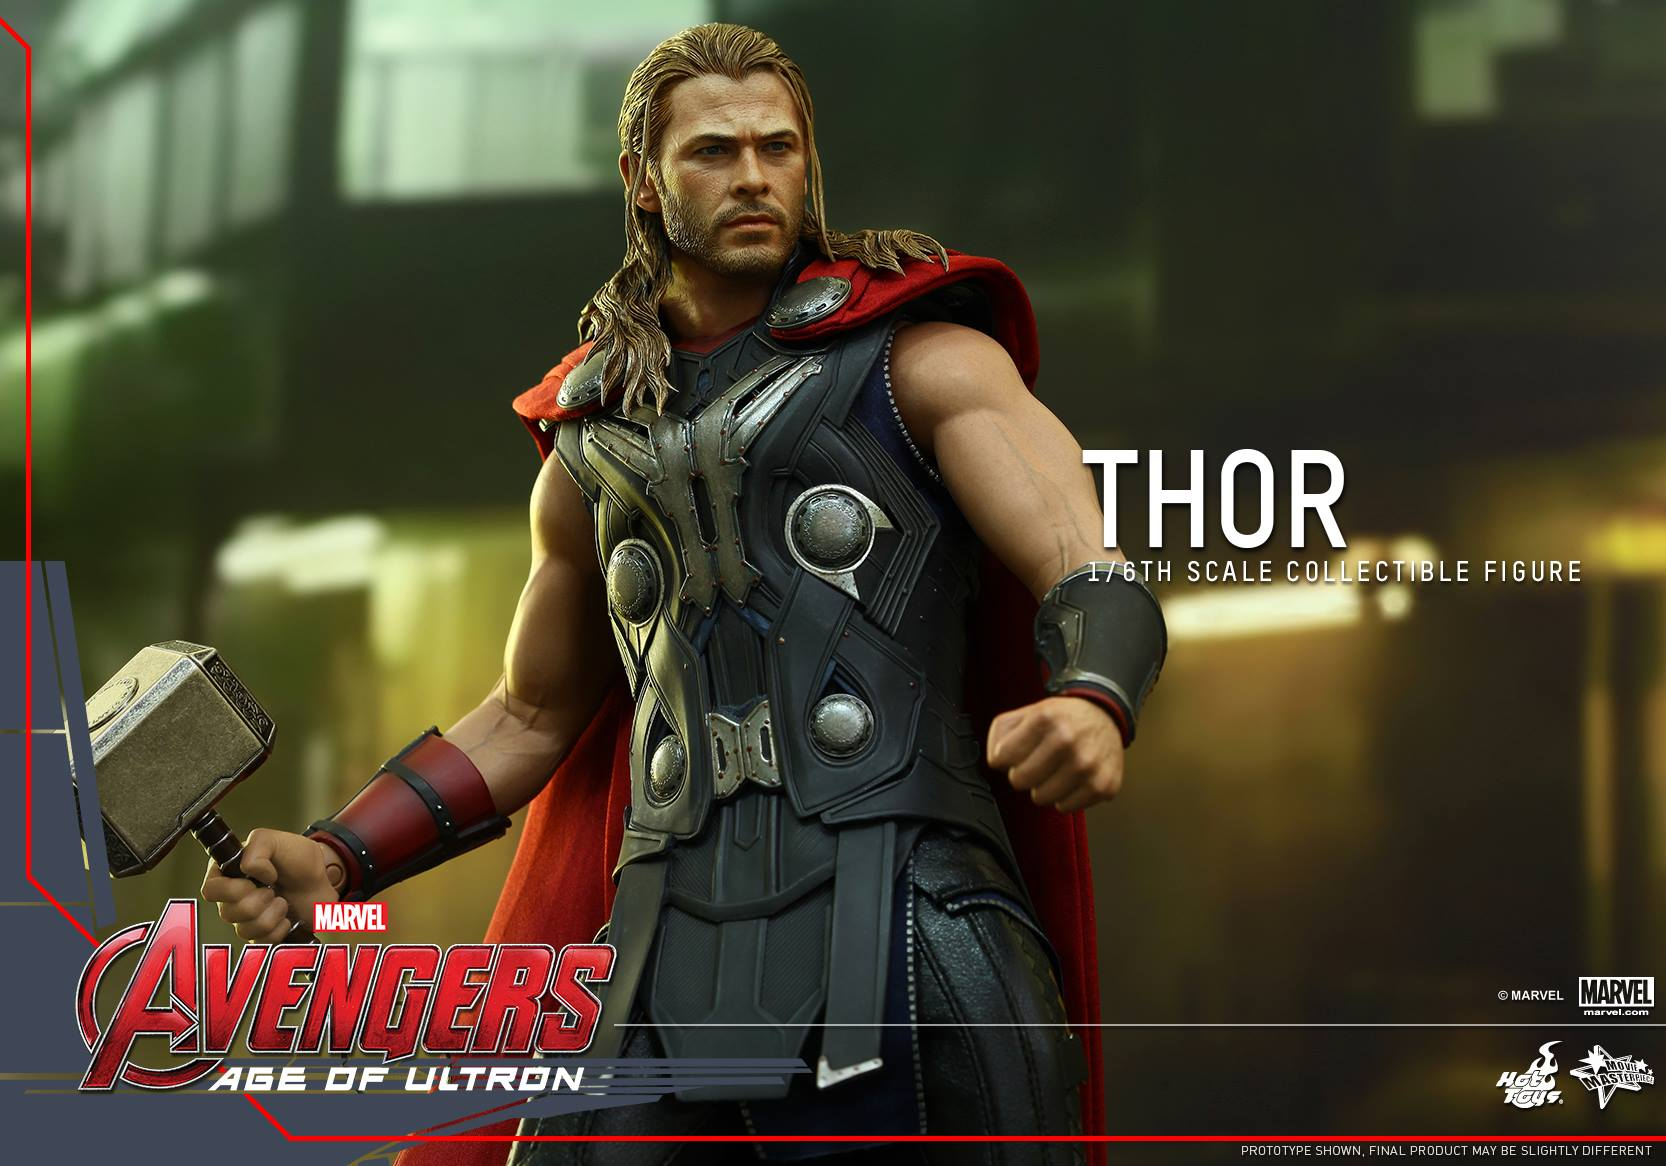 HOT TOYS - Avengers: Age of Ultron - Thor 671150112